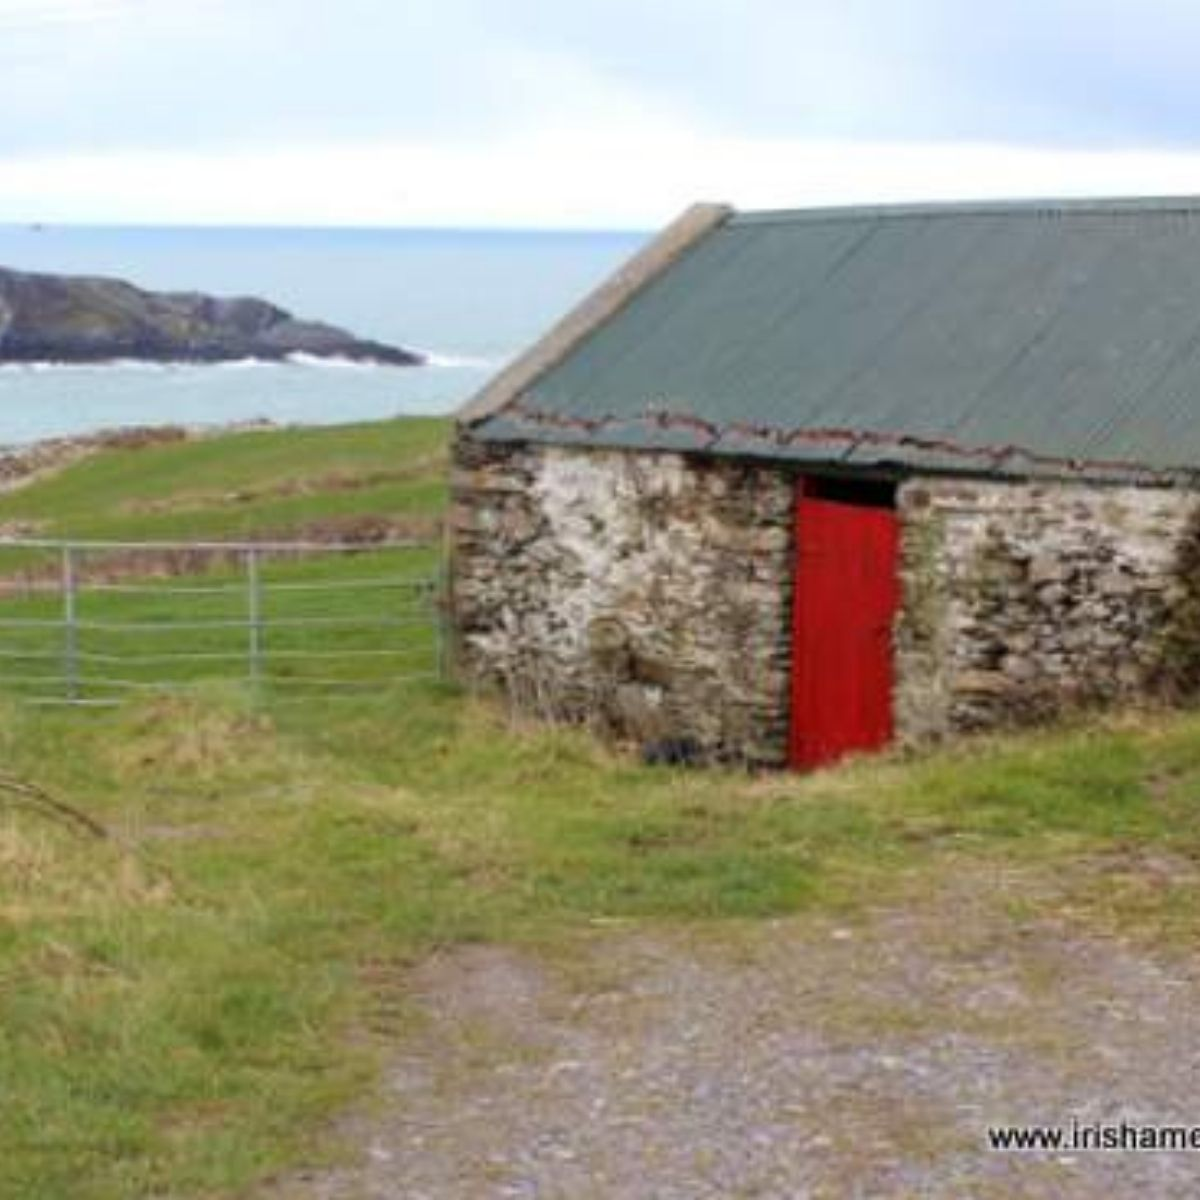 An iron gate beside an old shed with a red door on the coast